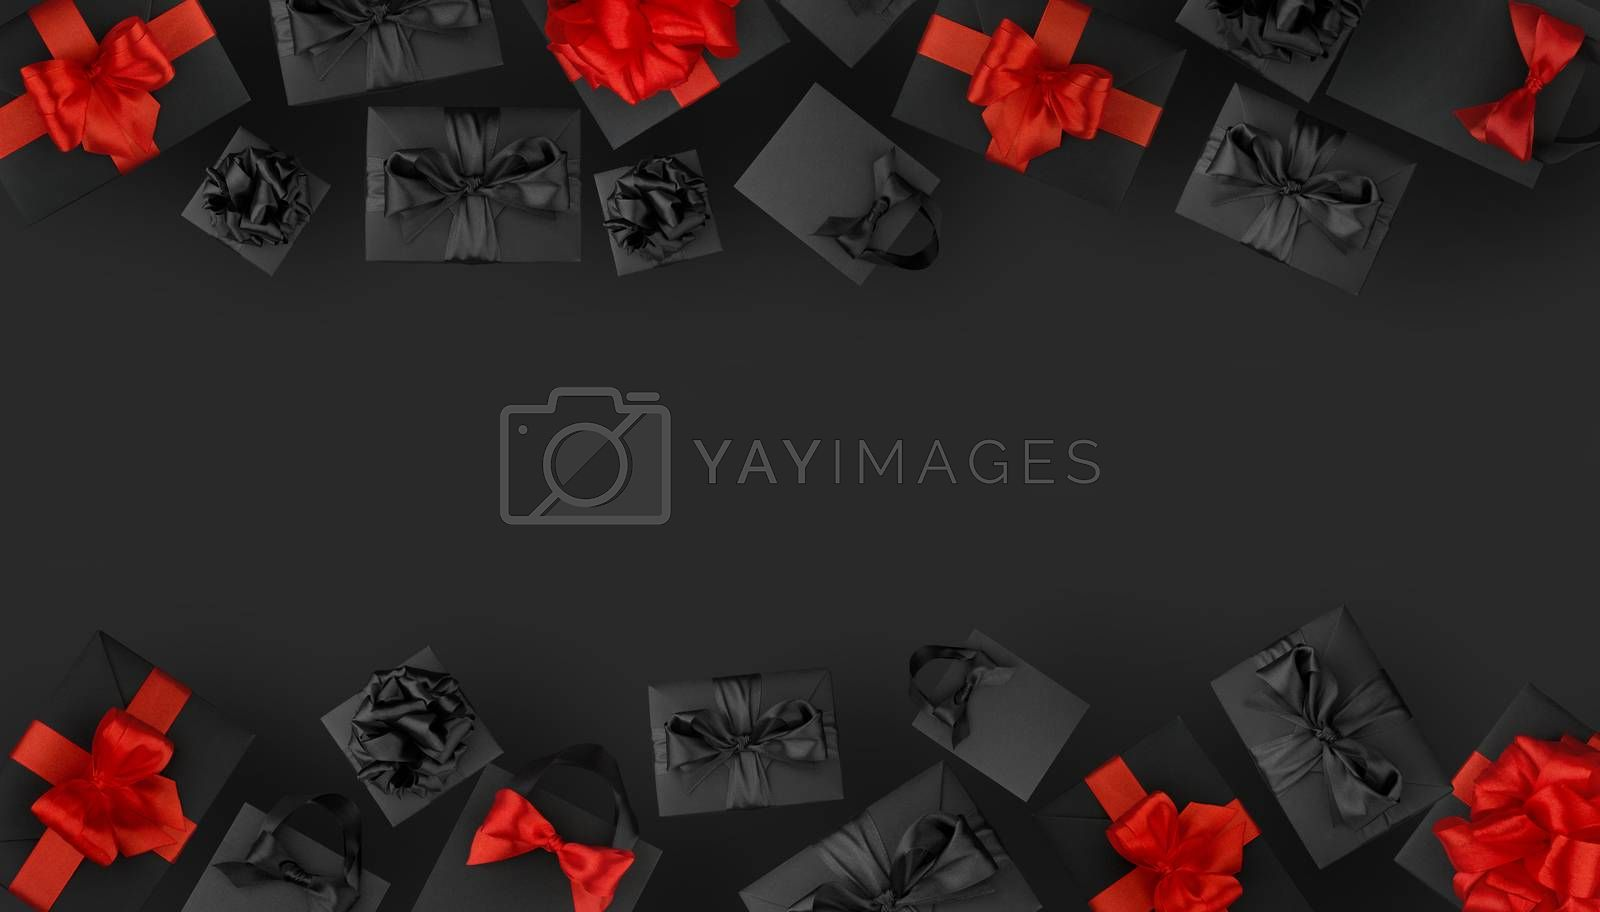 Black shopping bags and gift boxes and red bows on black background with copy space for text, Black Friday sale shopping concept